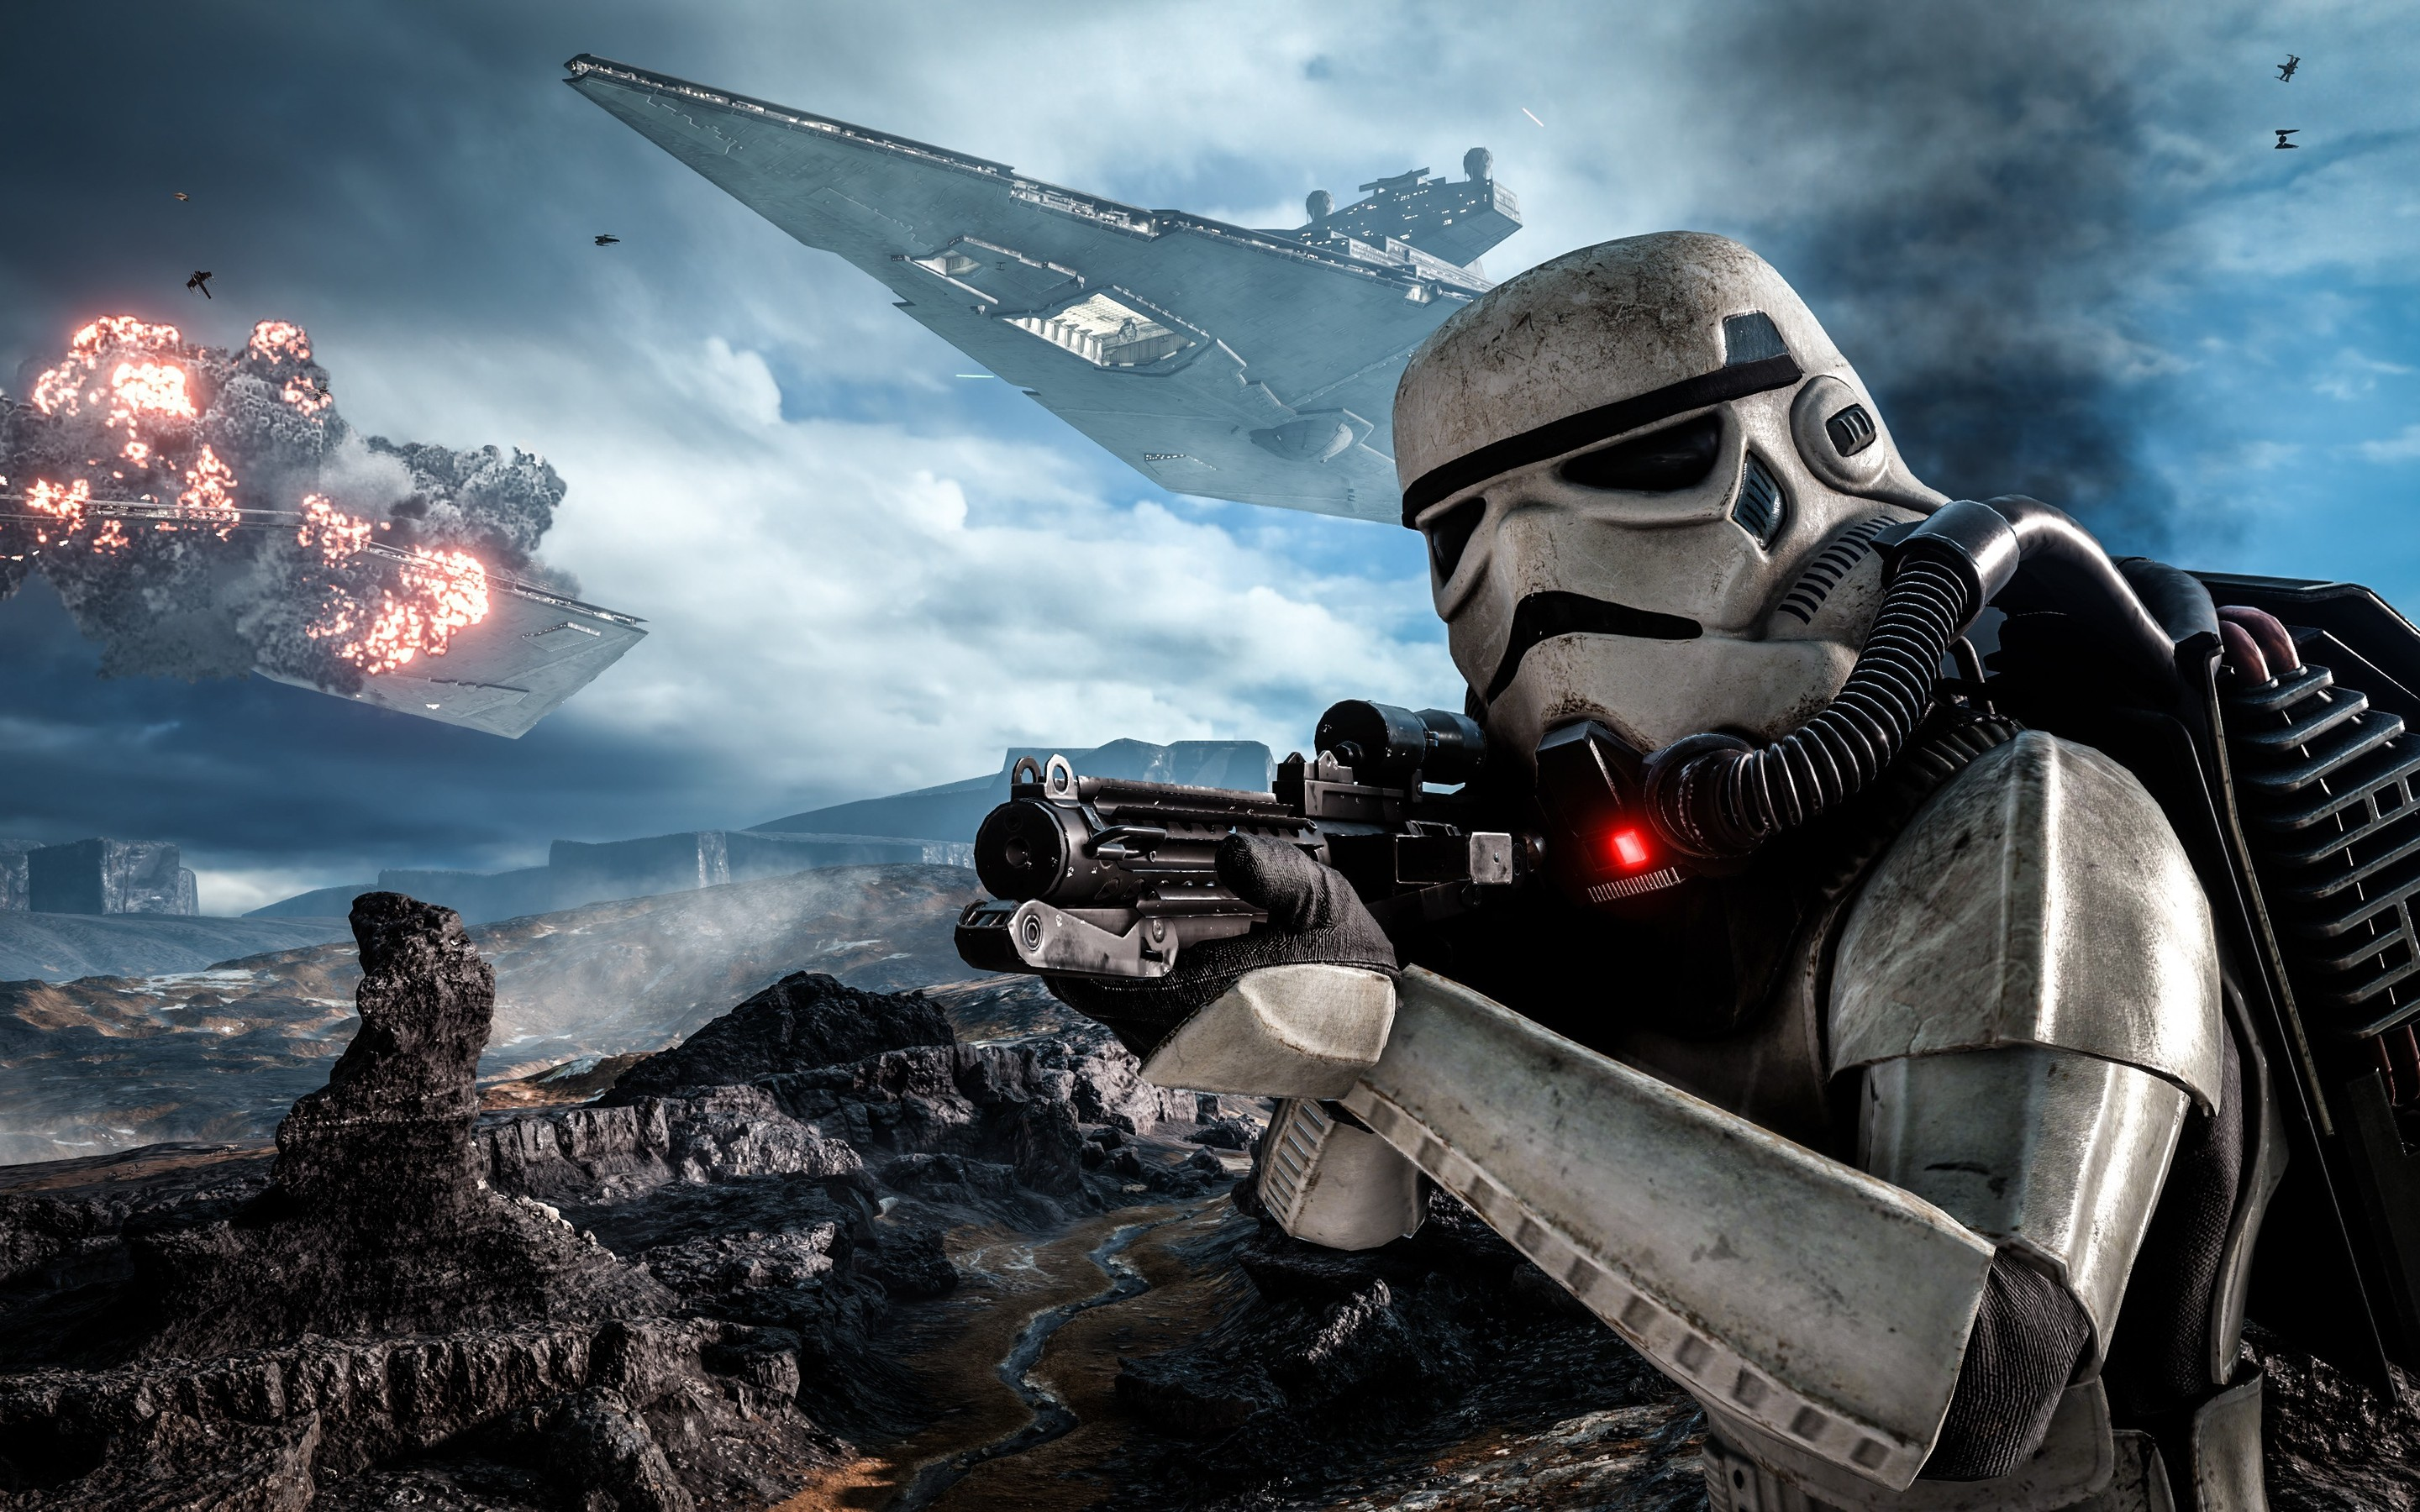 36 Star Wars Battlefront Hd Wallpapers Background Images Wallpaper Abyss